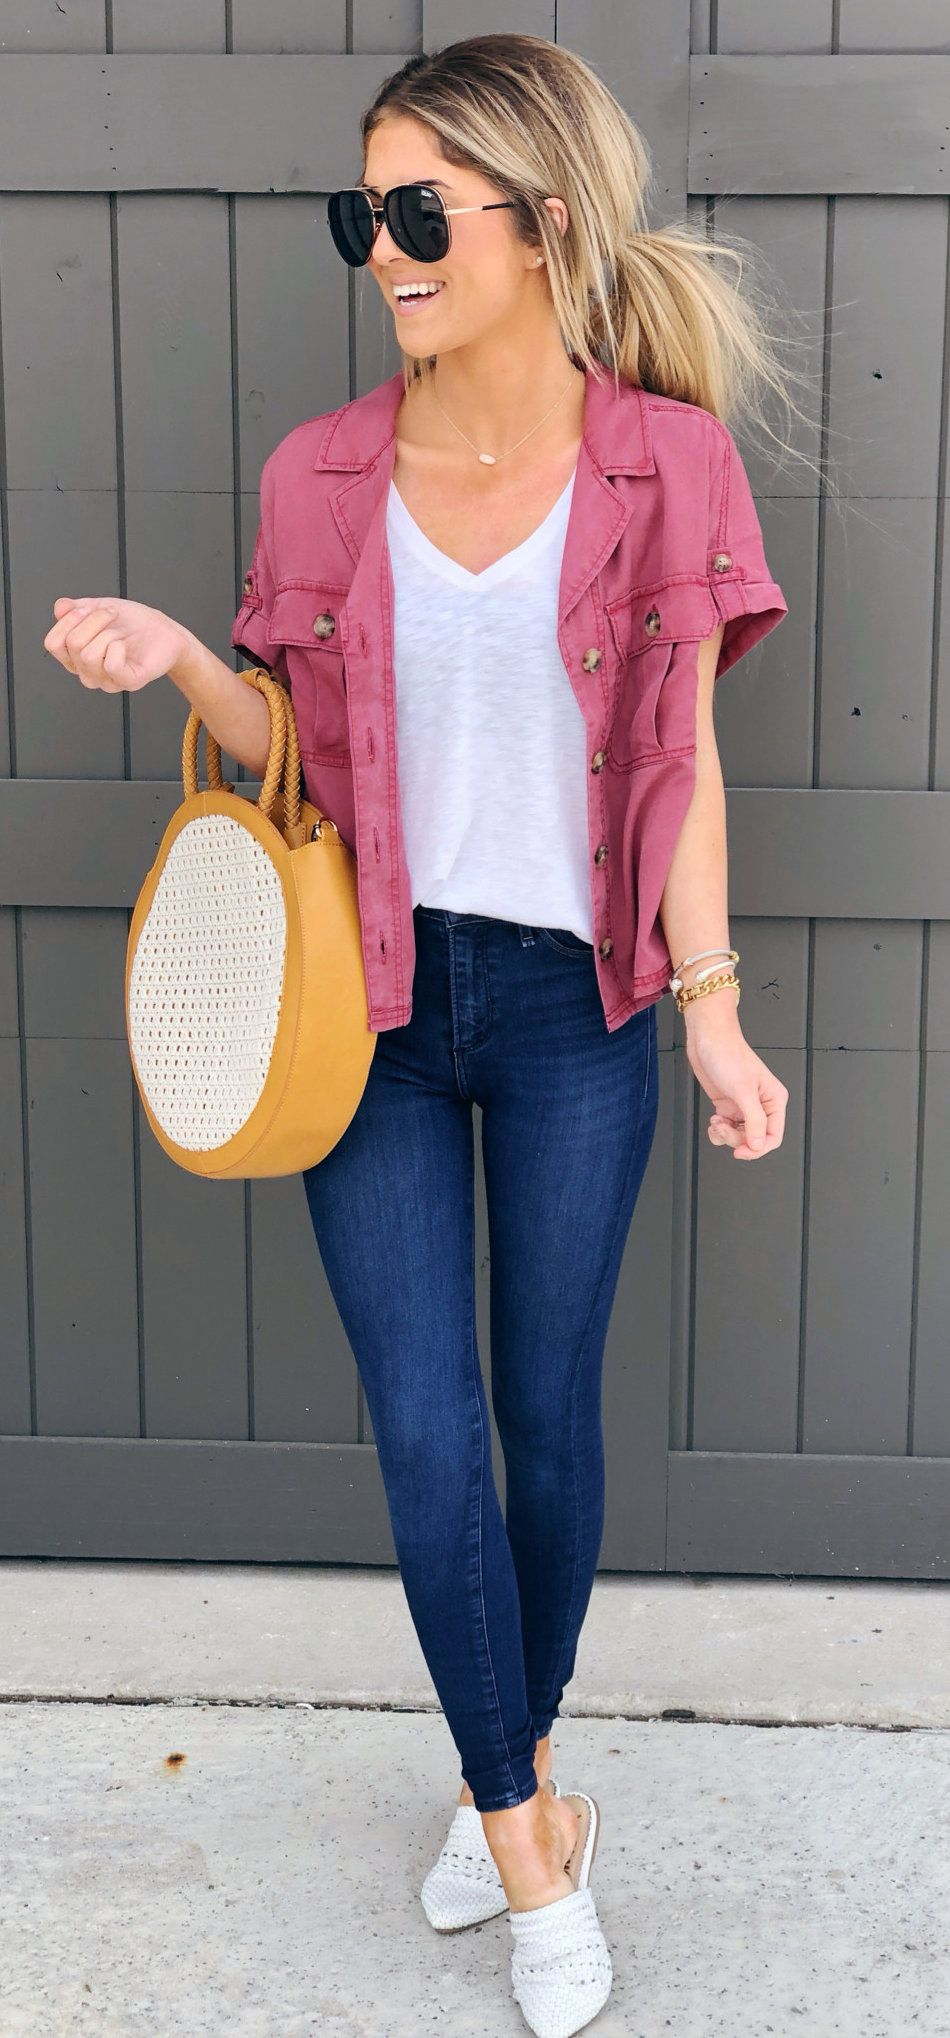 brown and white handbag #summer #outfits